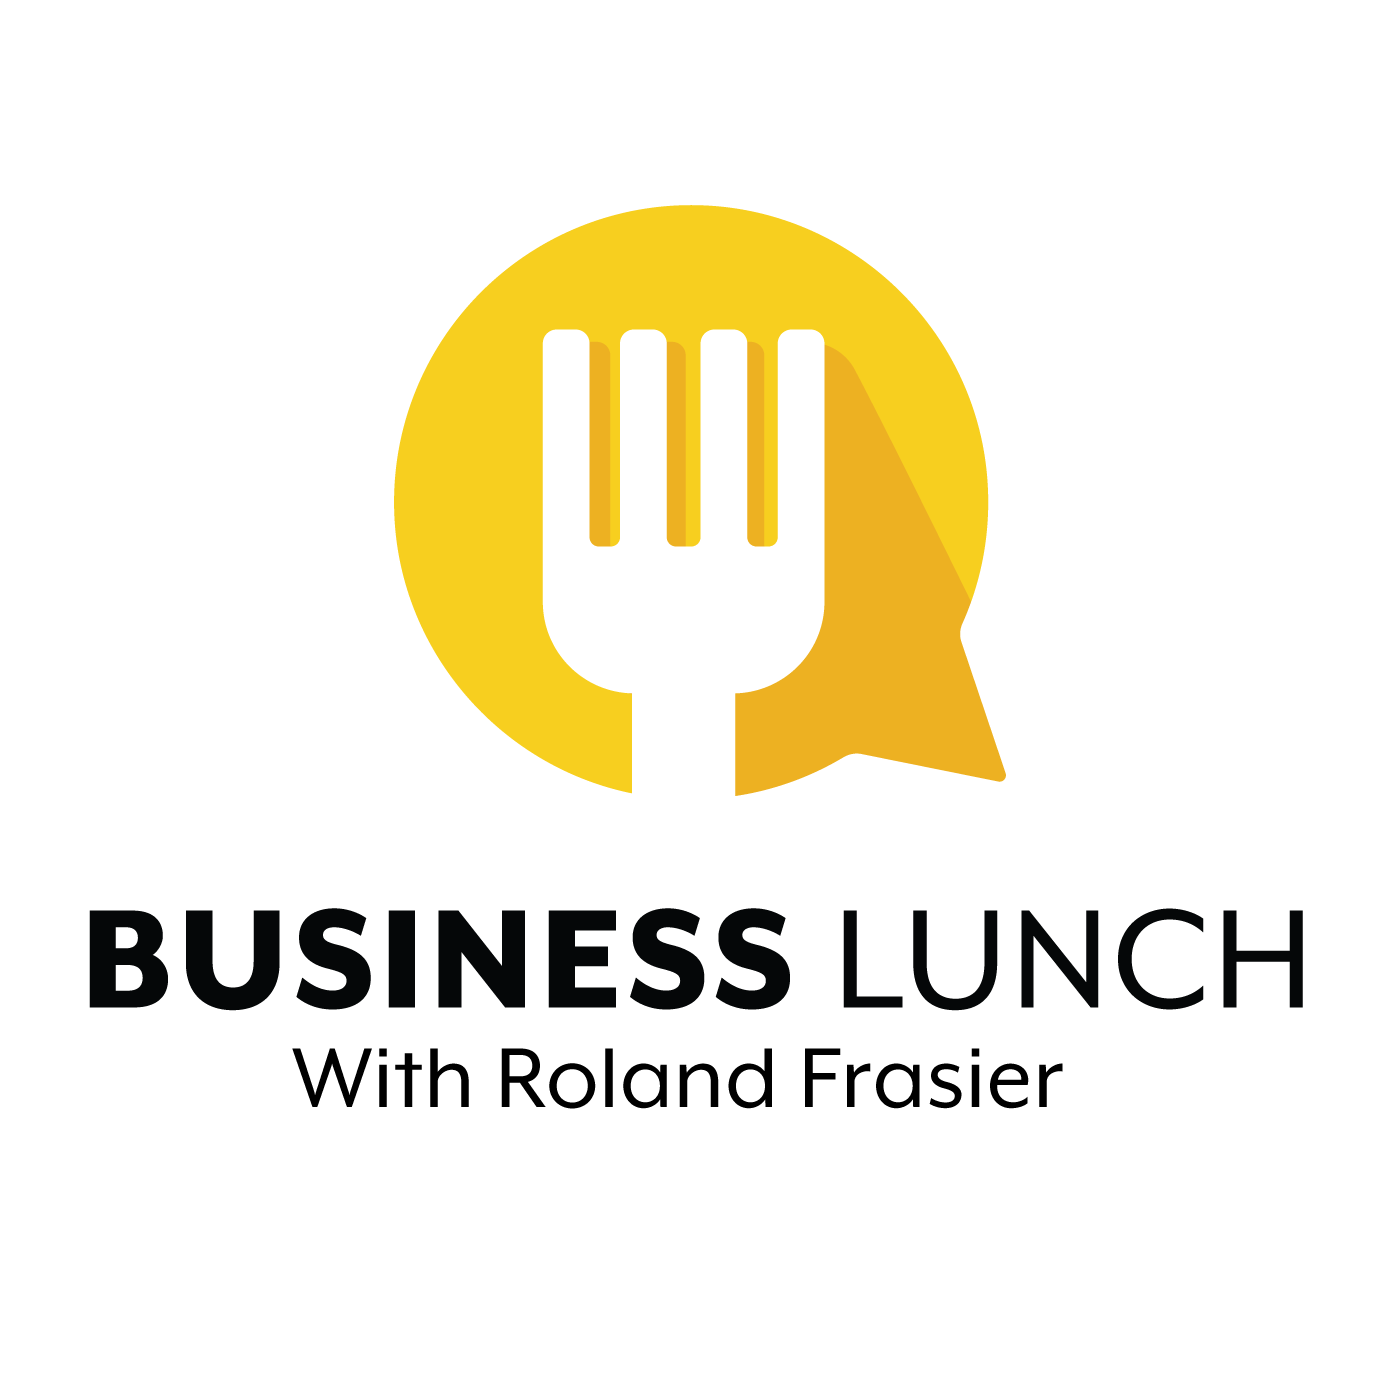 How to Use Partnerships To Have Your Best Day Ever - Every Day, with Roland Frasier